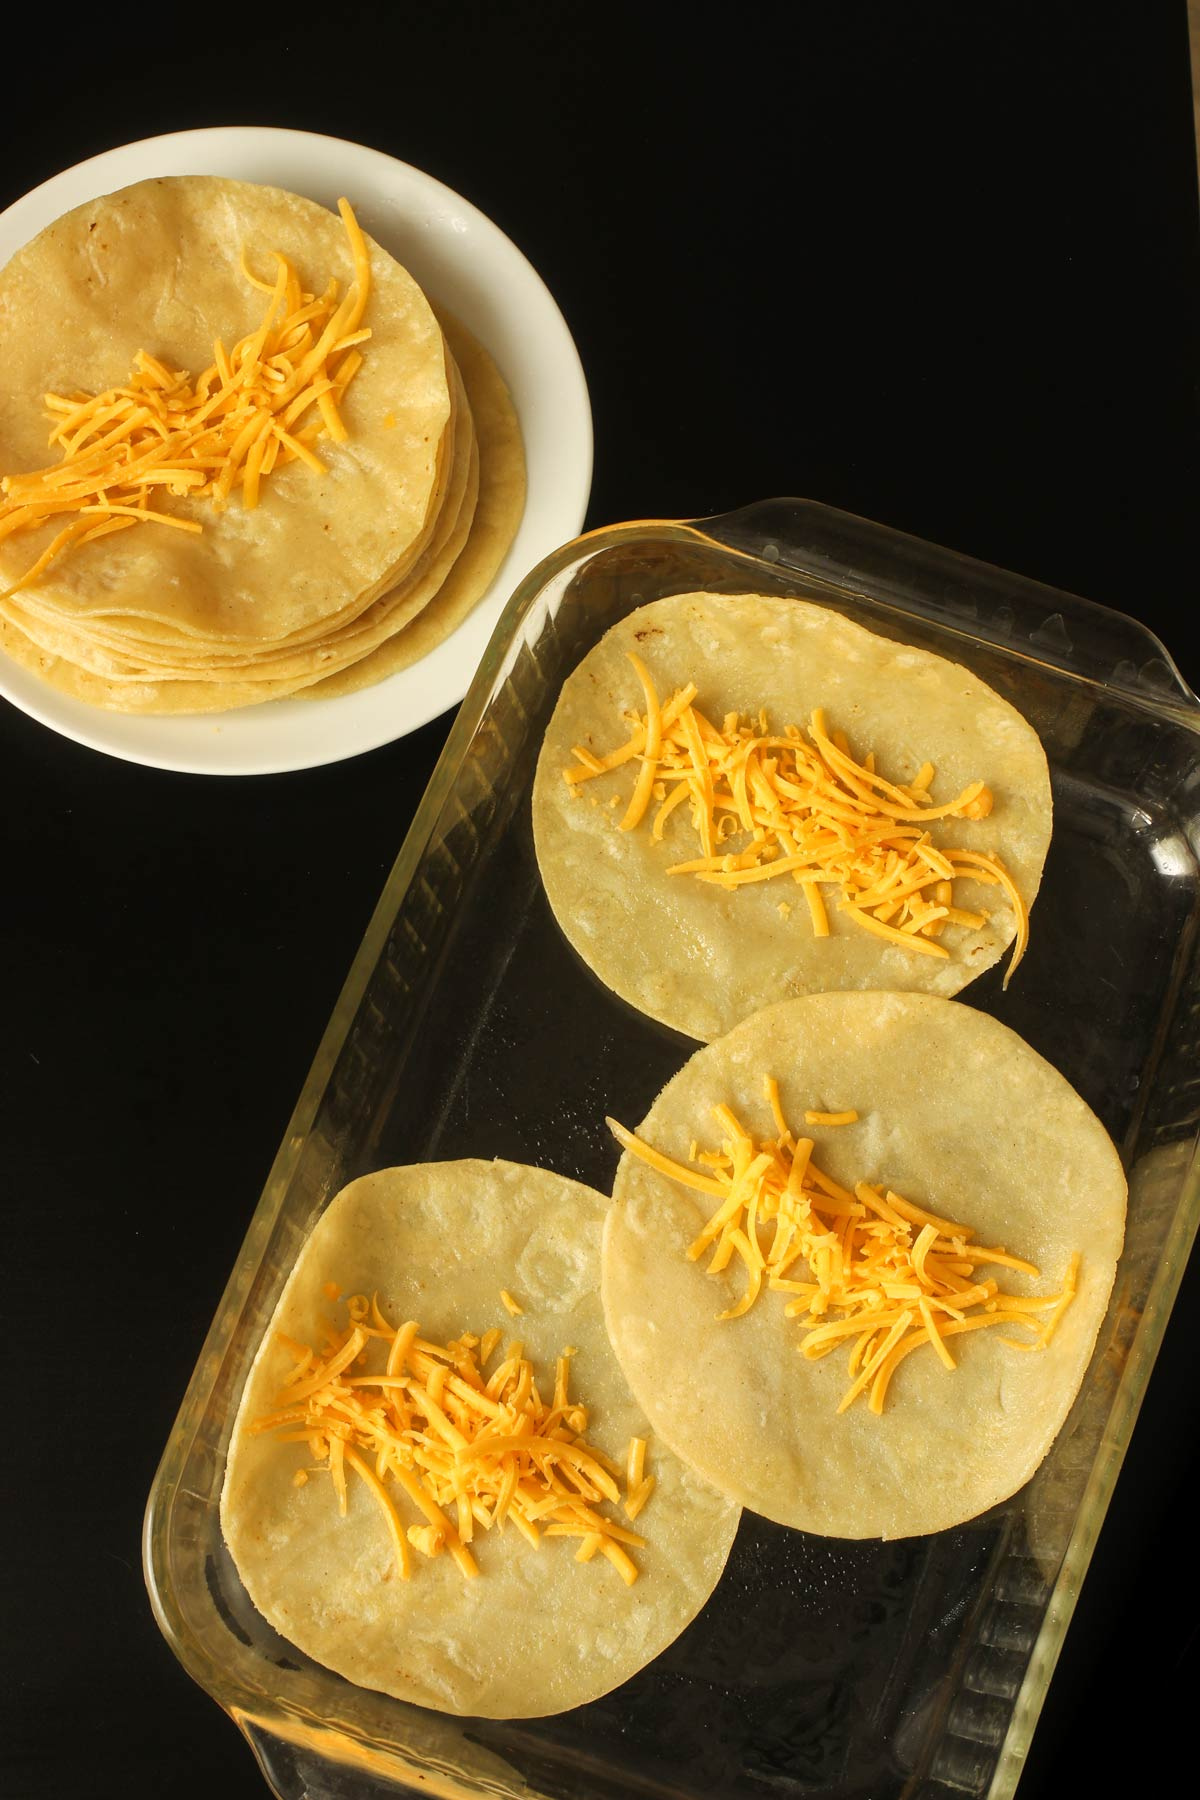 tortillas with shredded cheese on them for rolling into enchiladas.